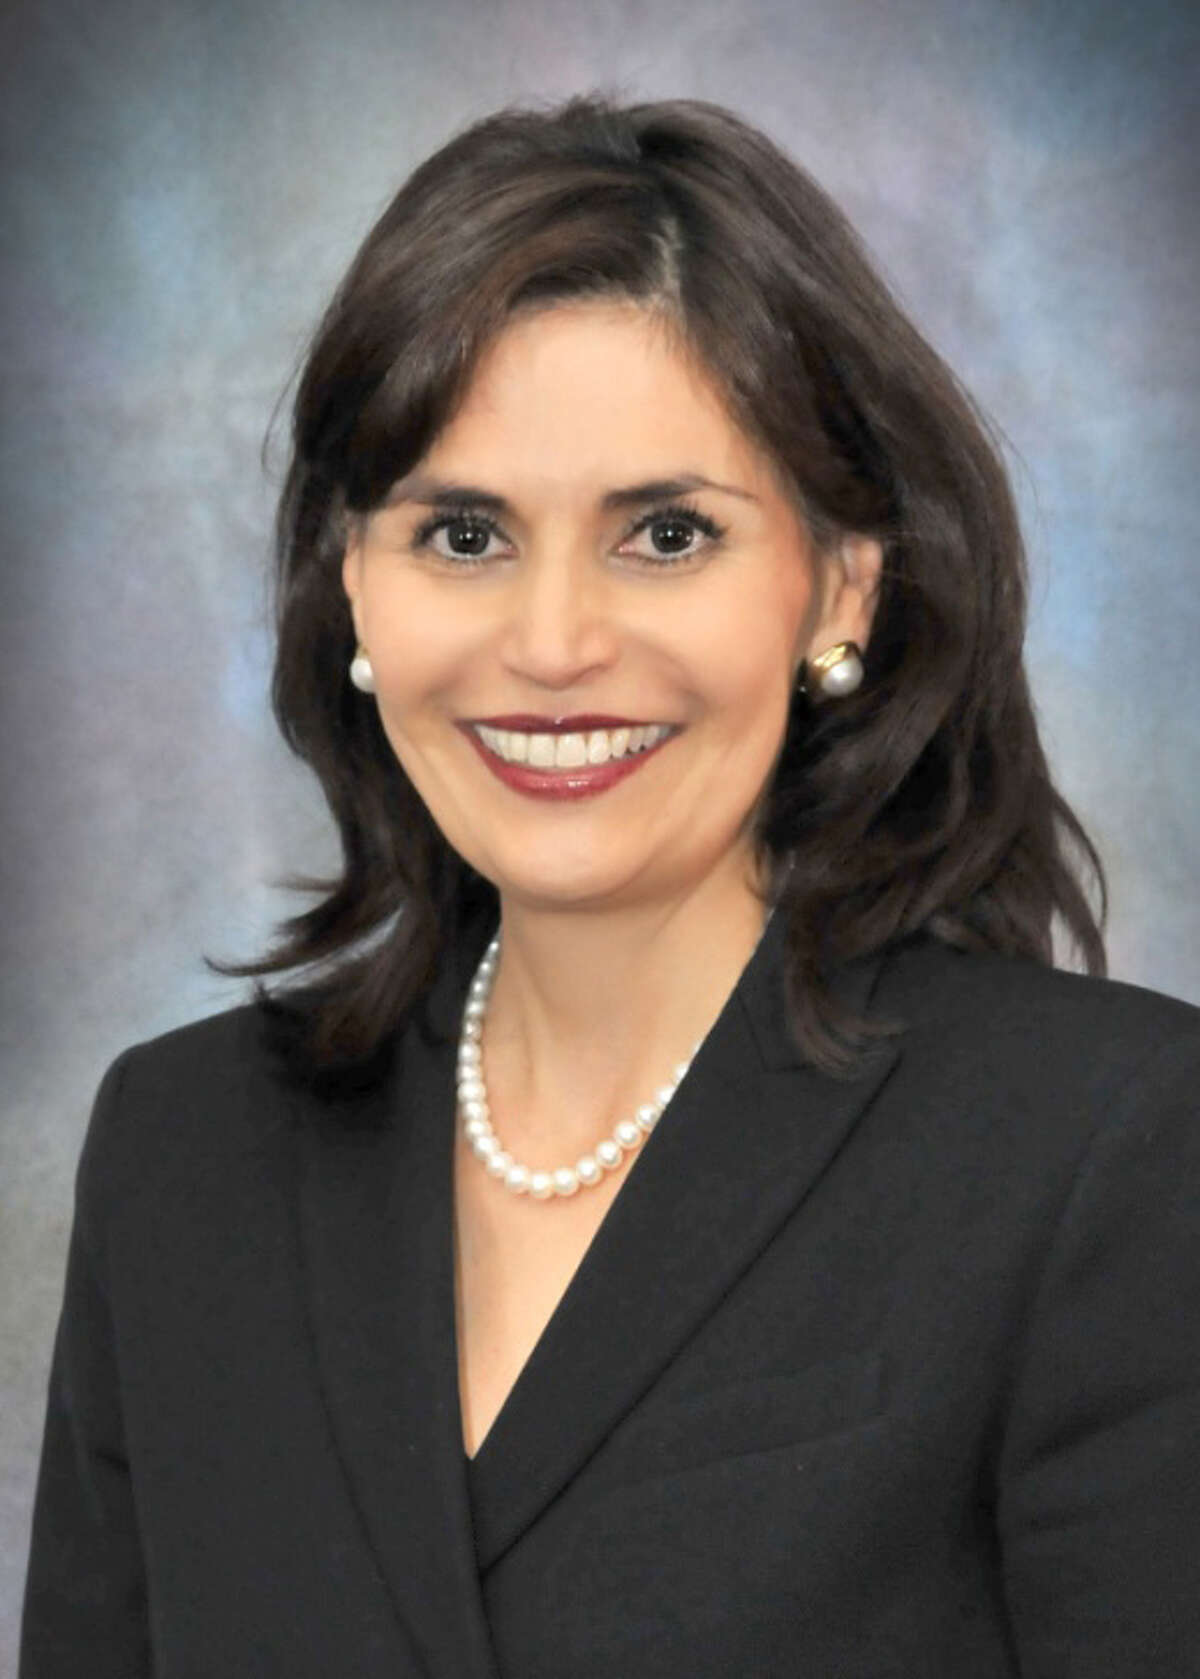 Denise Castillo-Rhodes  Executive vice president and chief financial officer of Texas Medical Center. Castillo Rhodes is from El Paso and a first-generation college student.